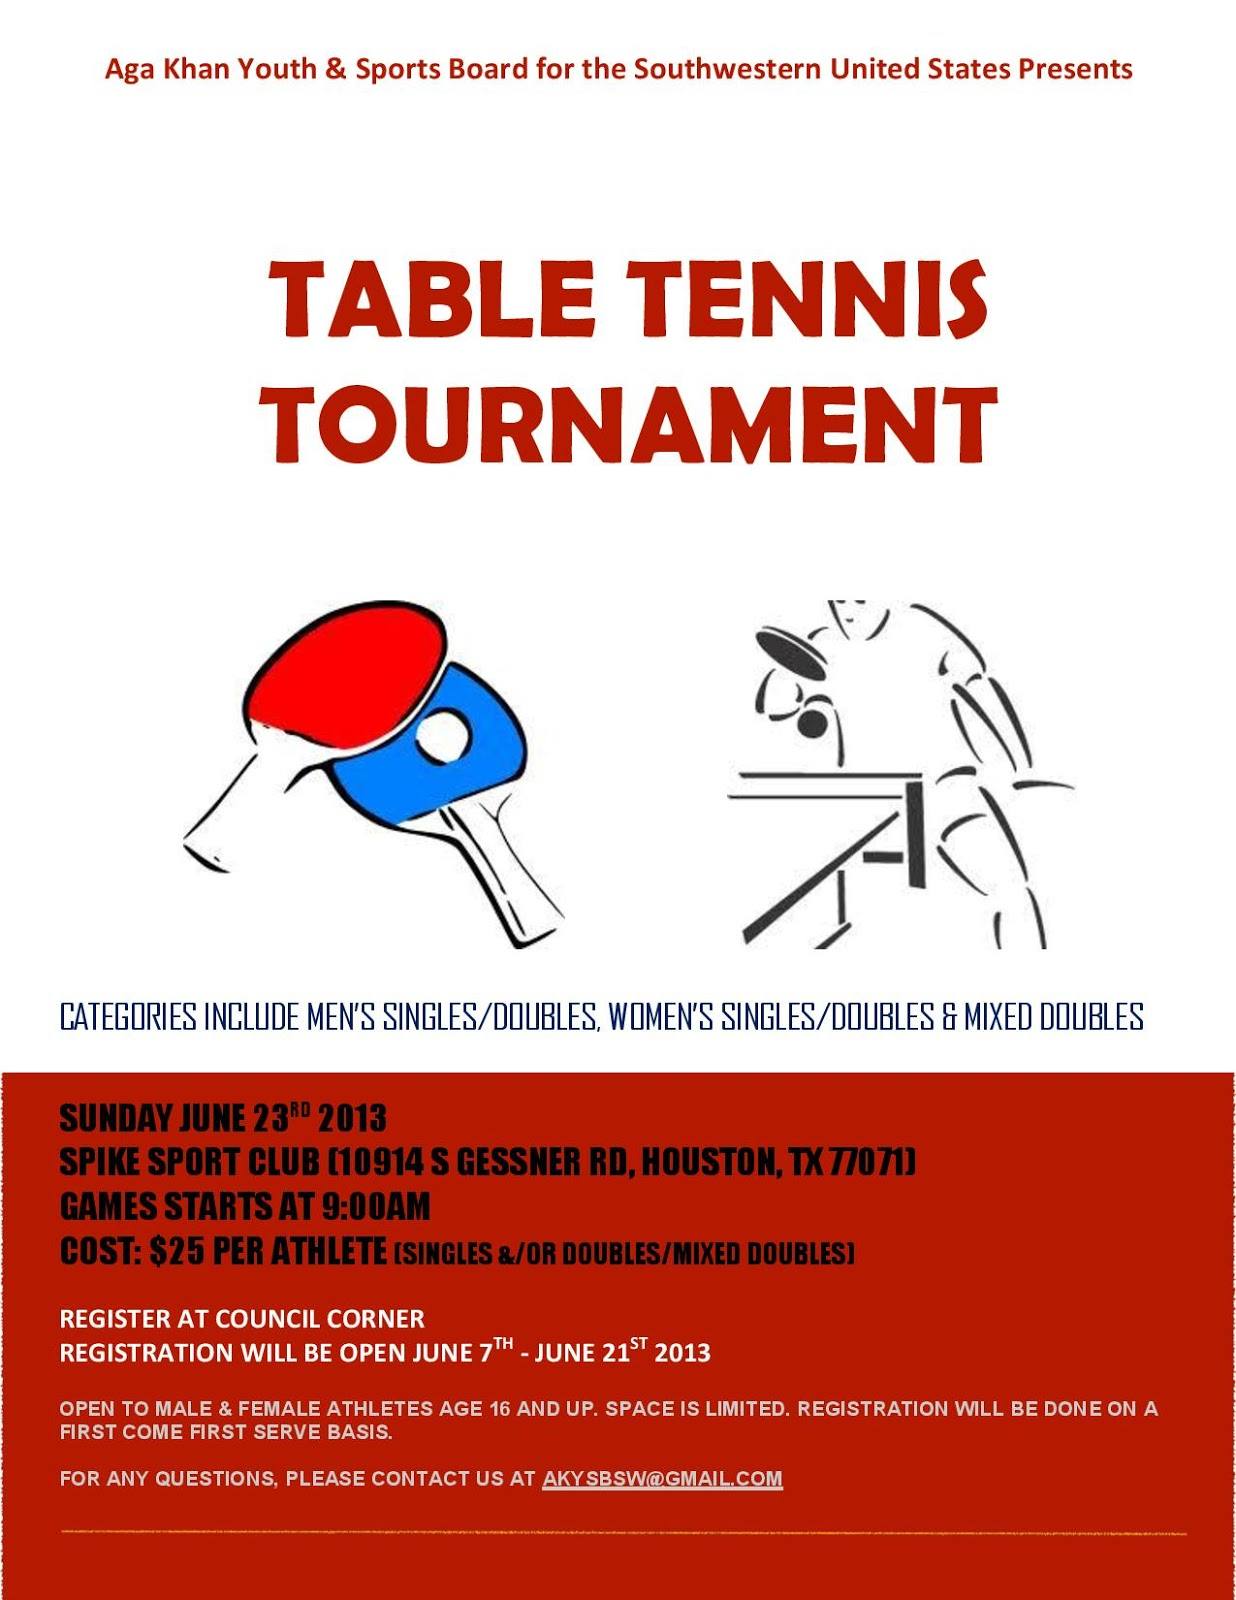 table tennis tournament template aga khan youth sports board for the southwestern united